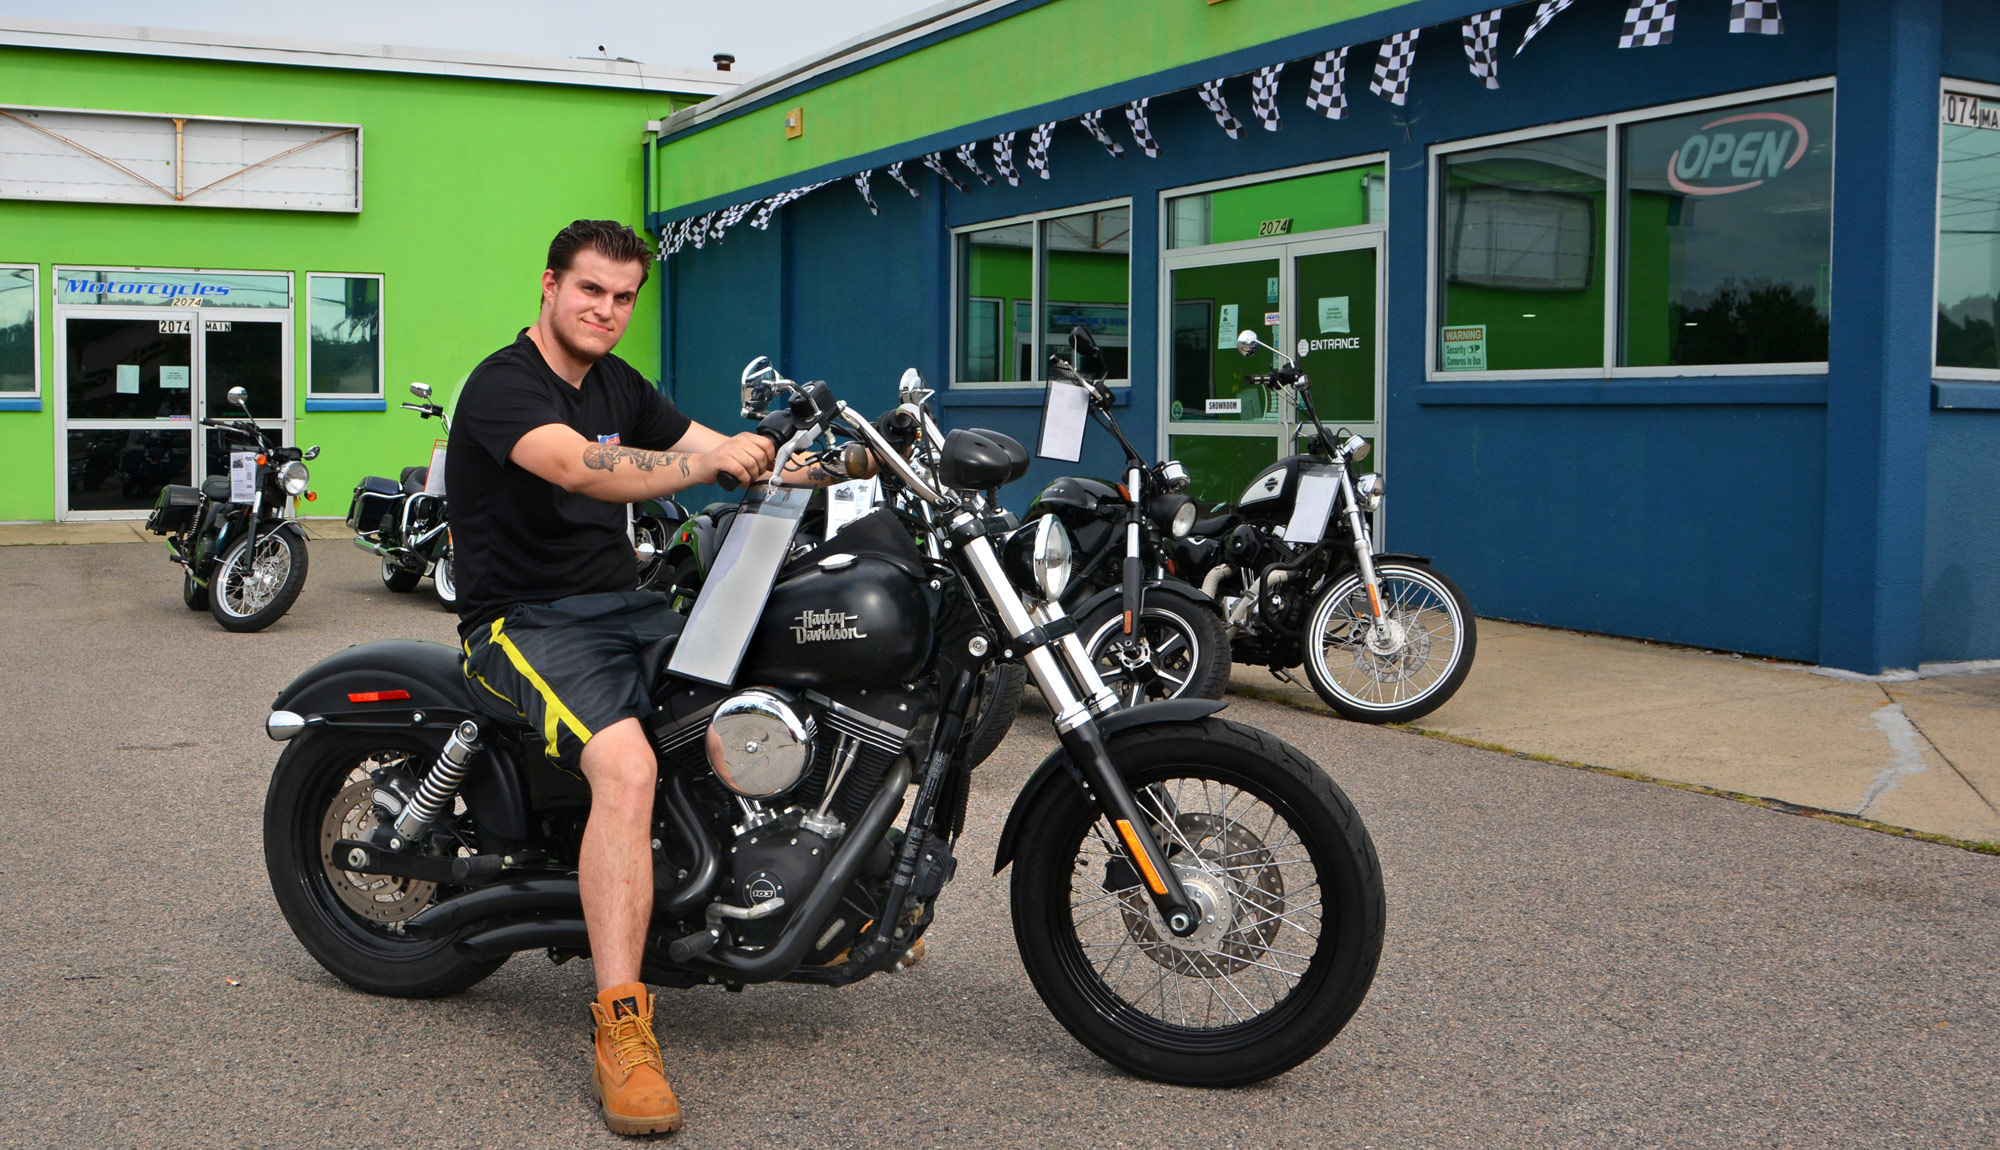 2019 MTTI Graduate, Robbie Thorp At Brockton Cycles, Where He Works As A Motorcycle Technician.